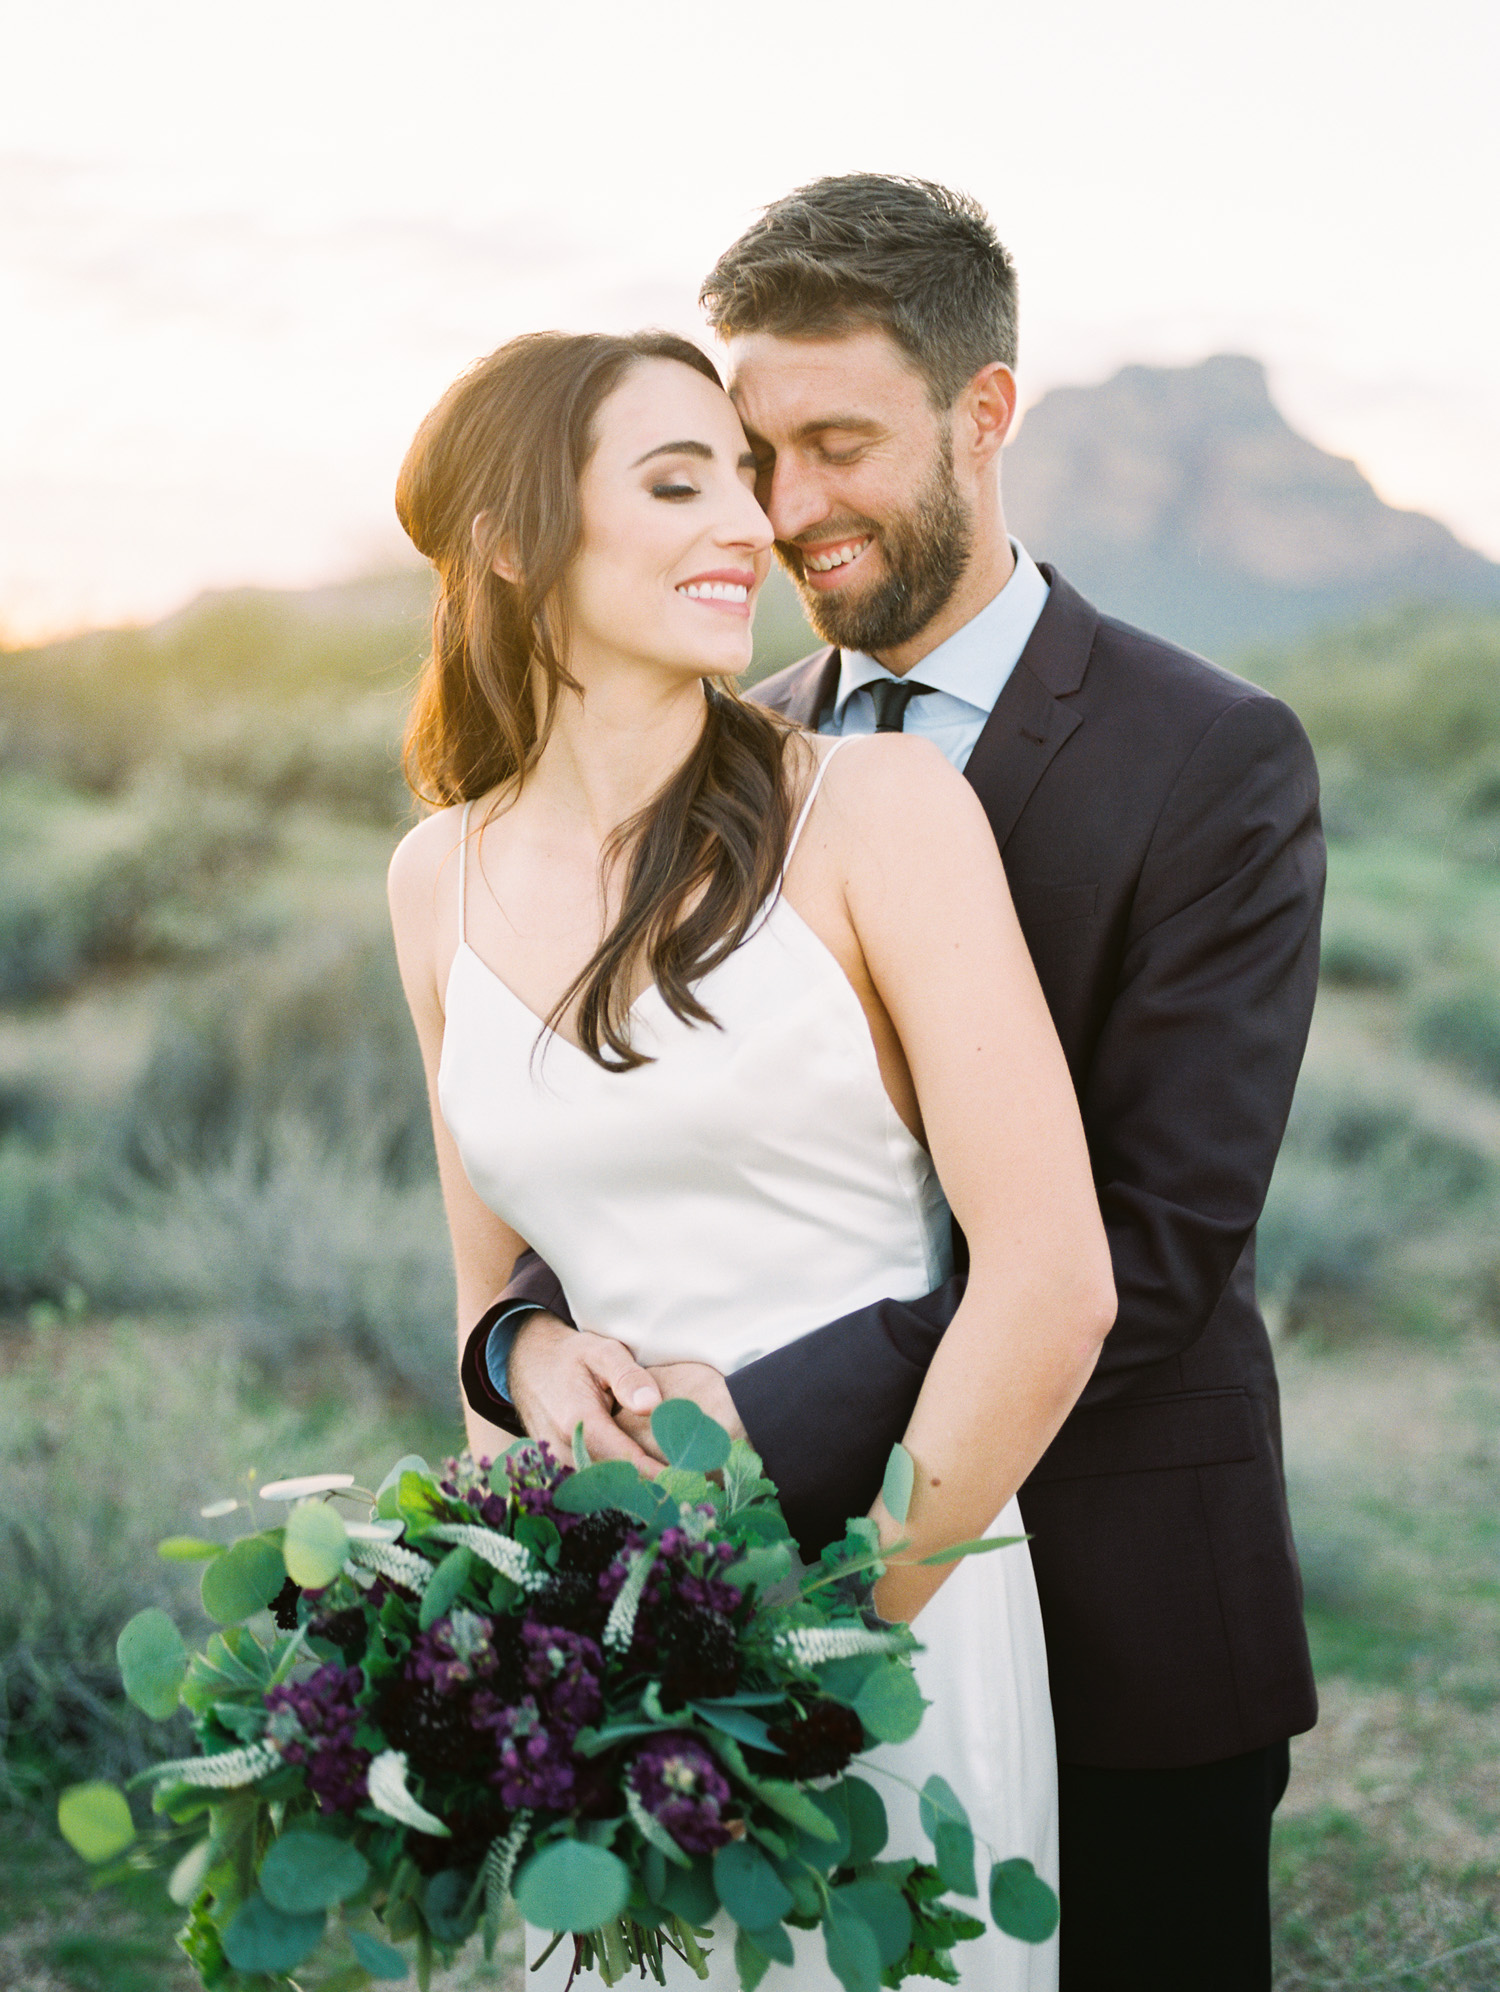 Couple embracing on their wedding day with amazing desert views in the background.